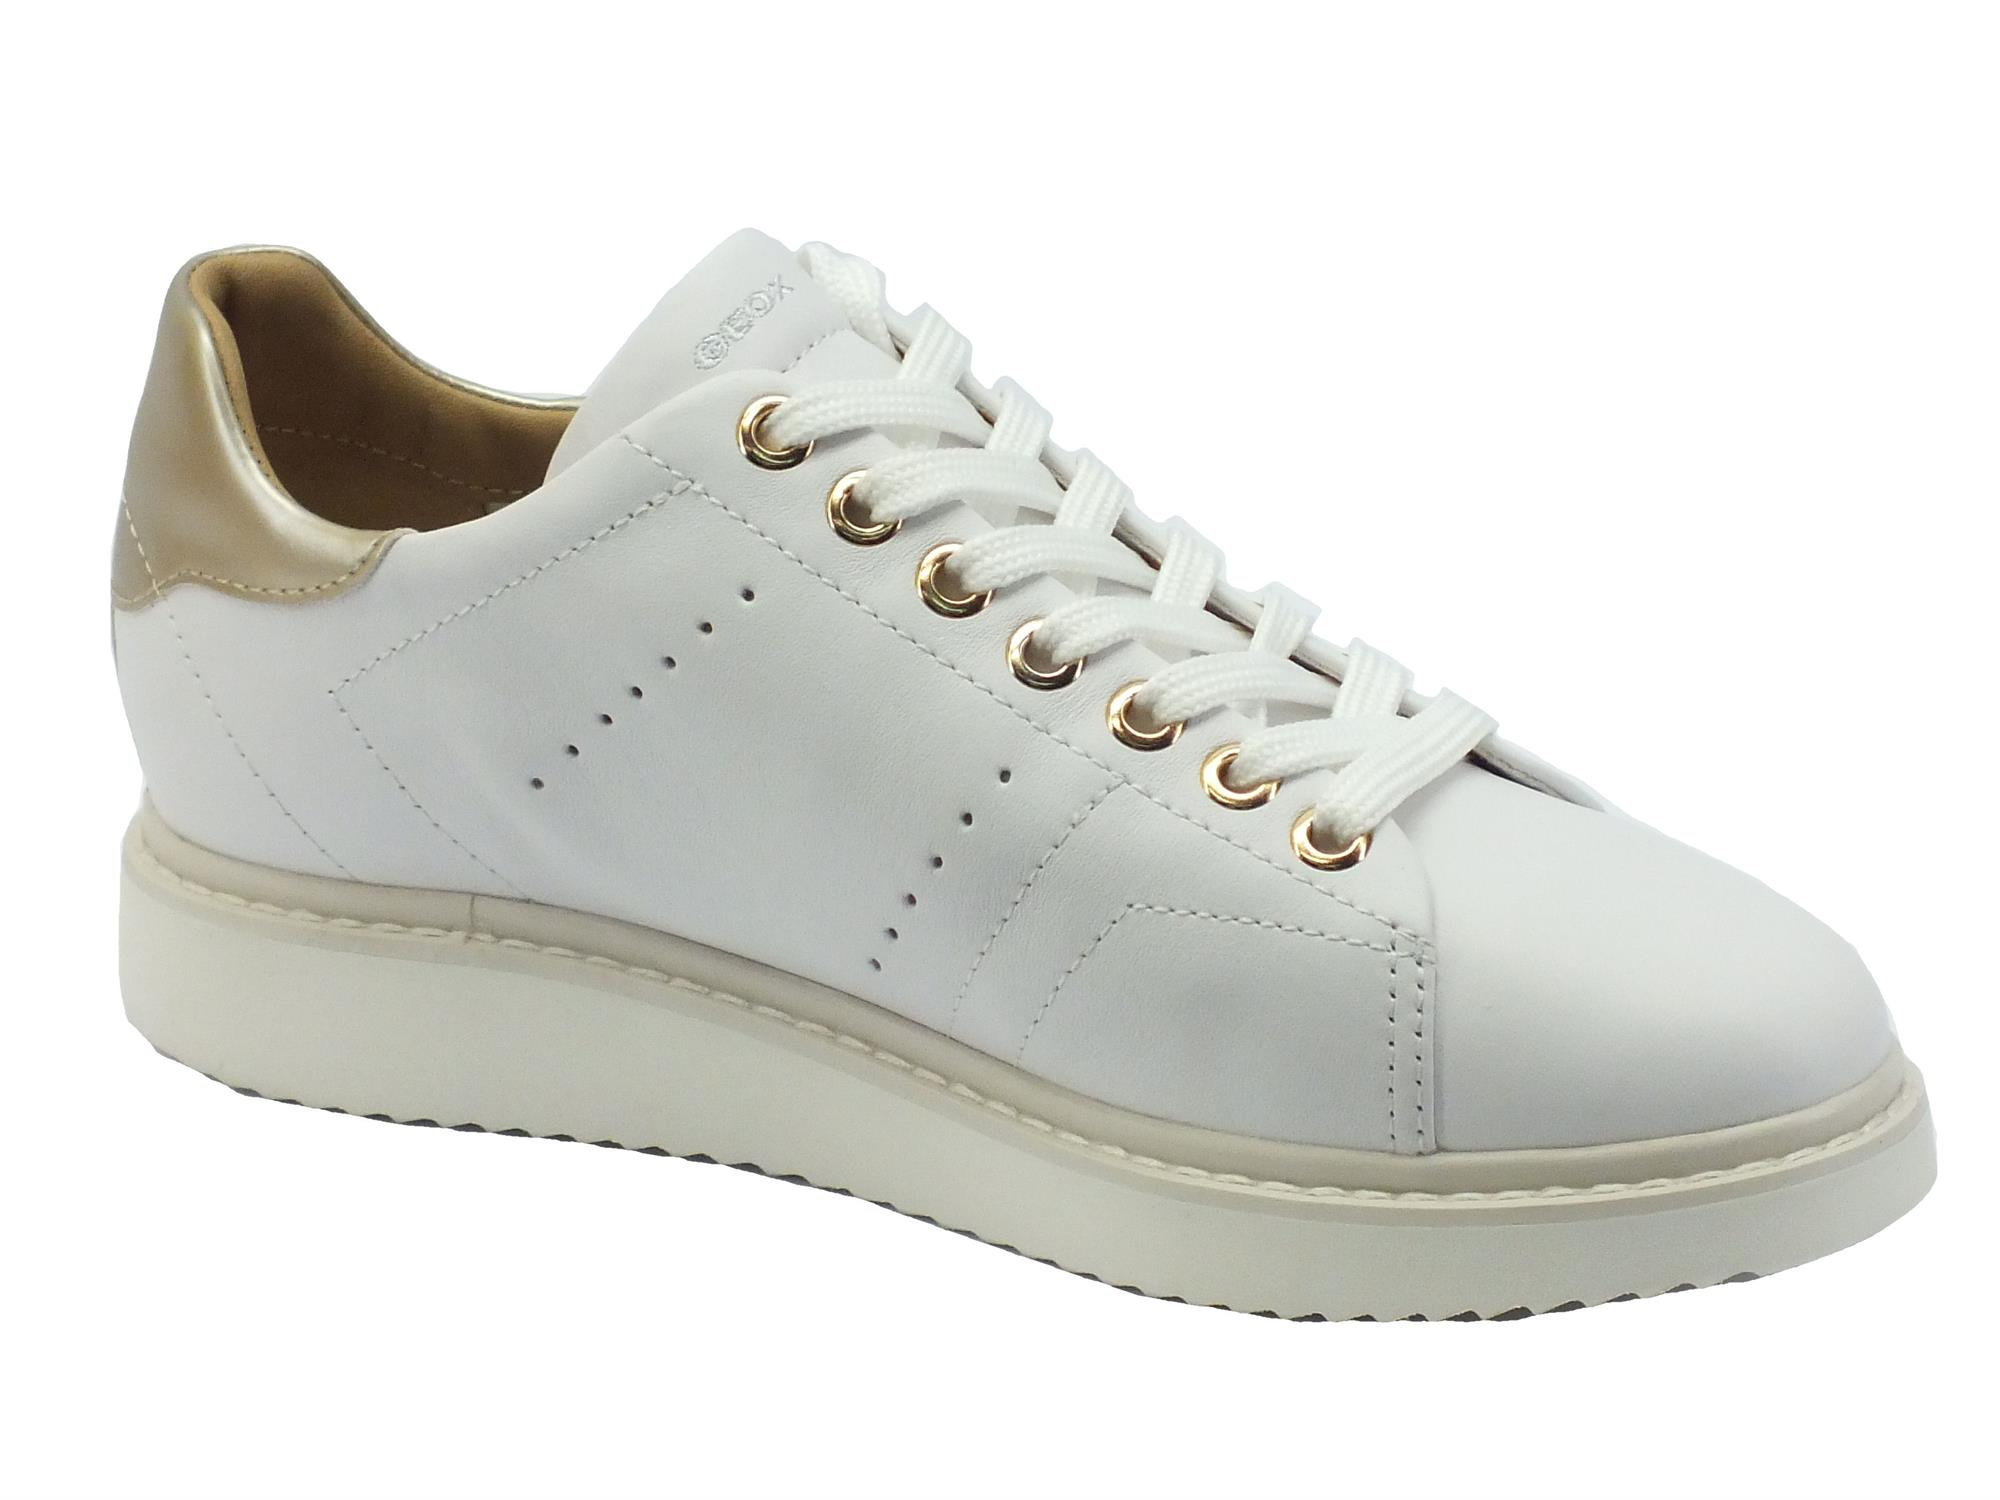 GEOX donna sneakers nere in vera pelle 36. - mainstreetblytheville.org 2b193c467ea